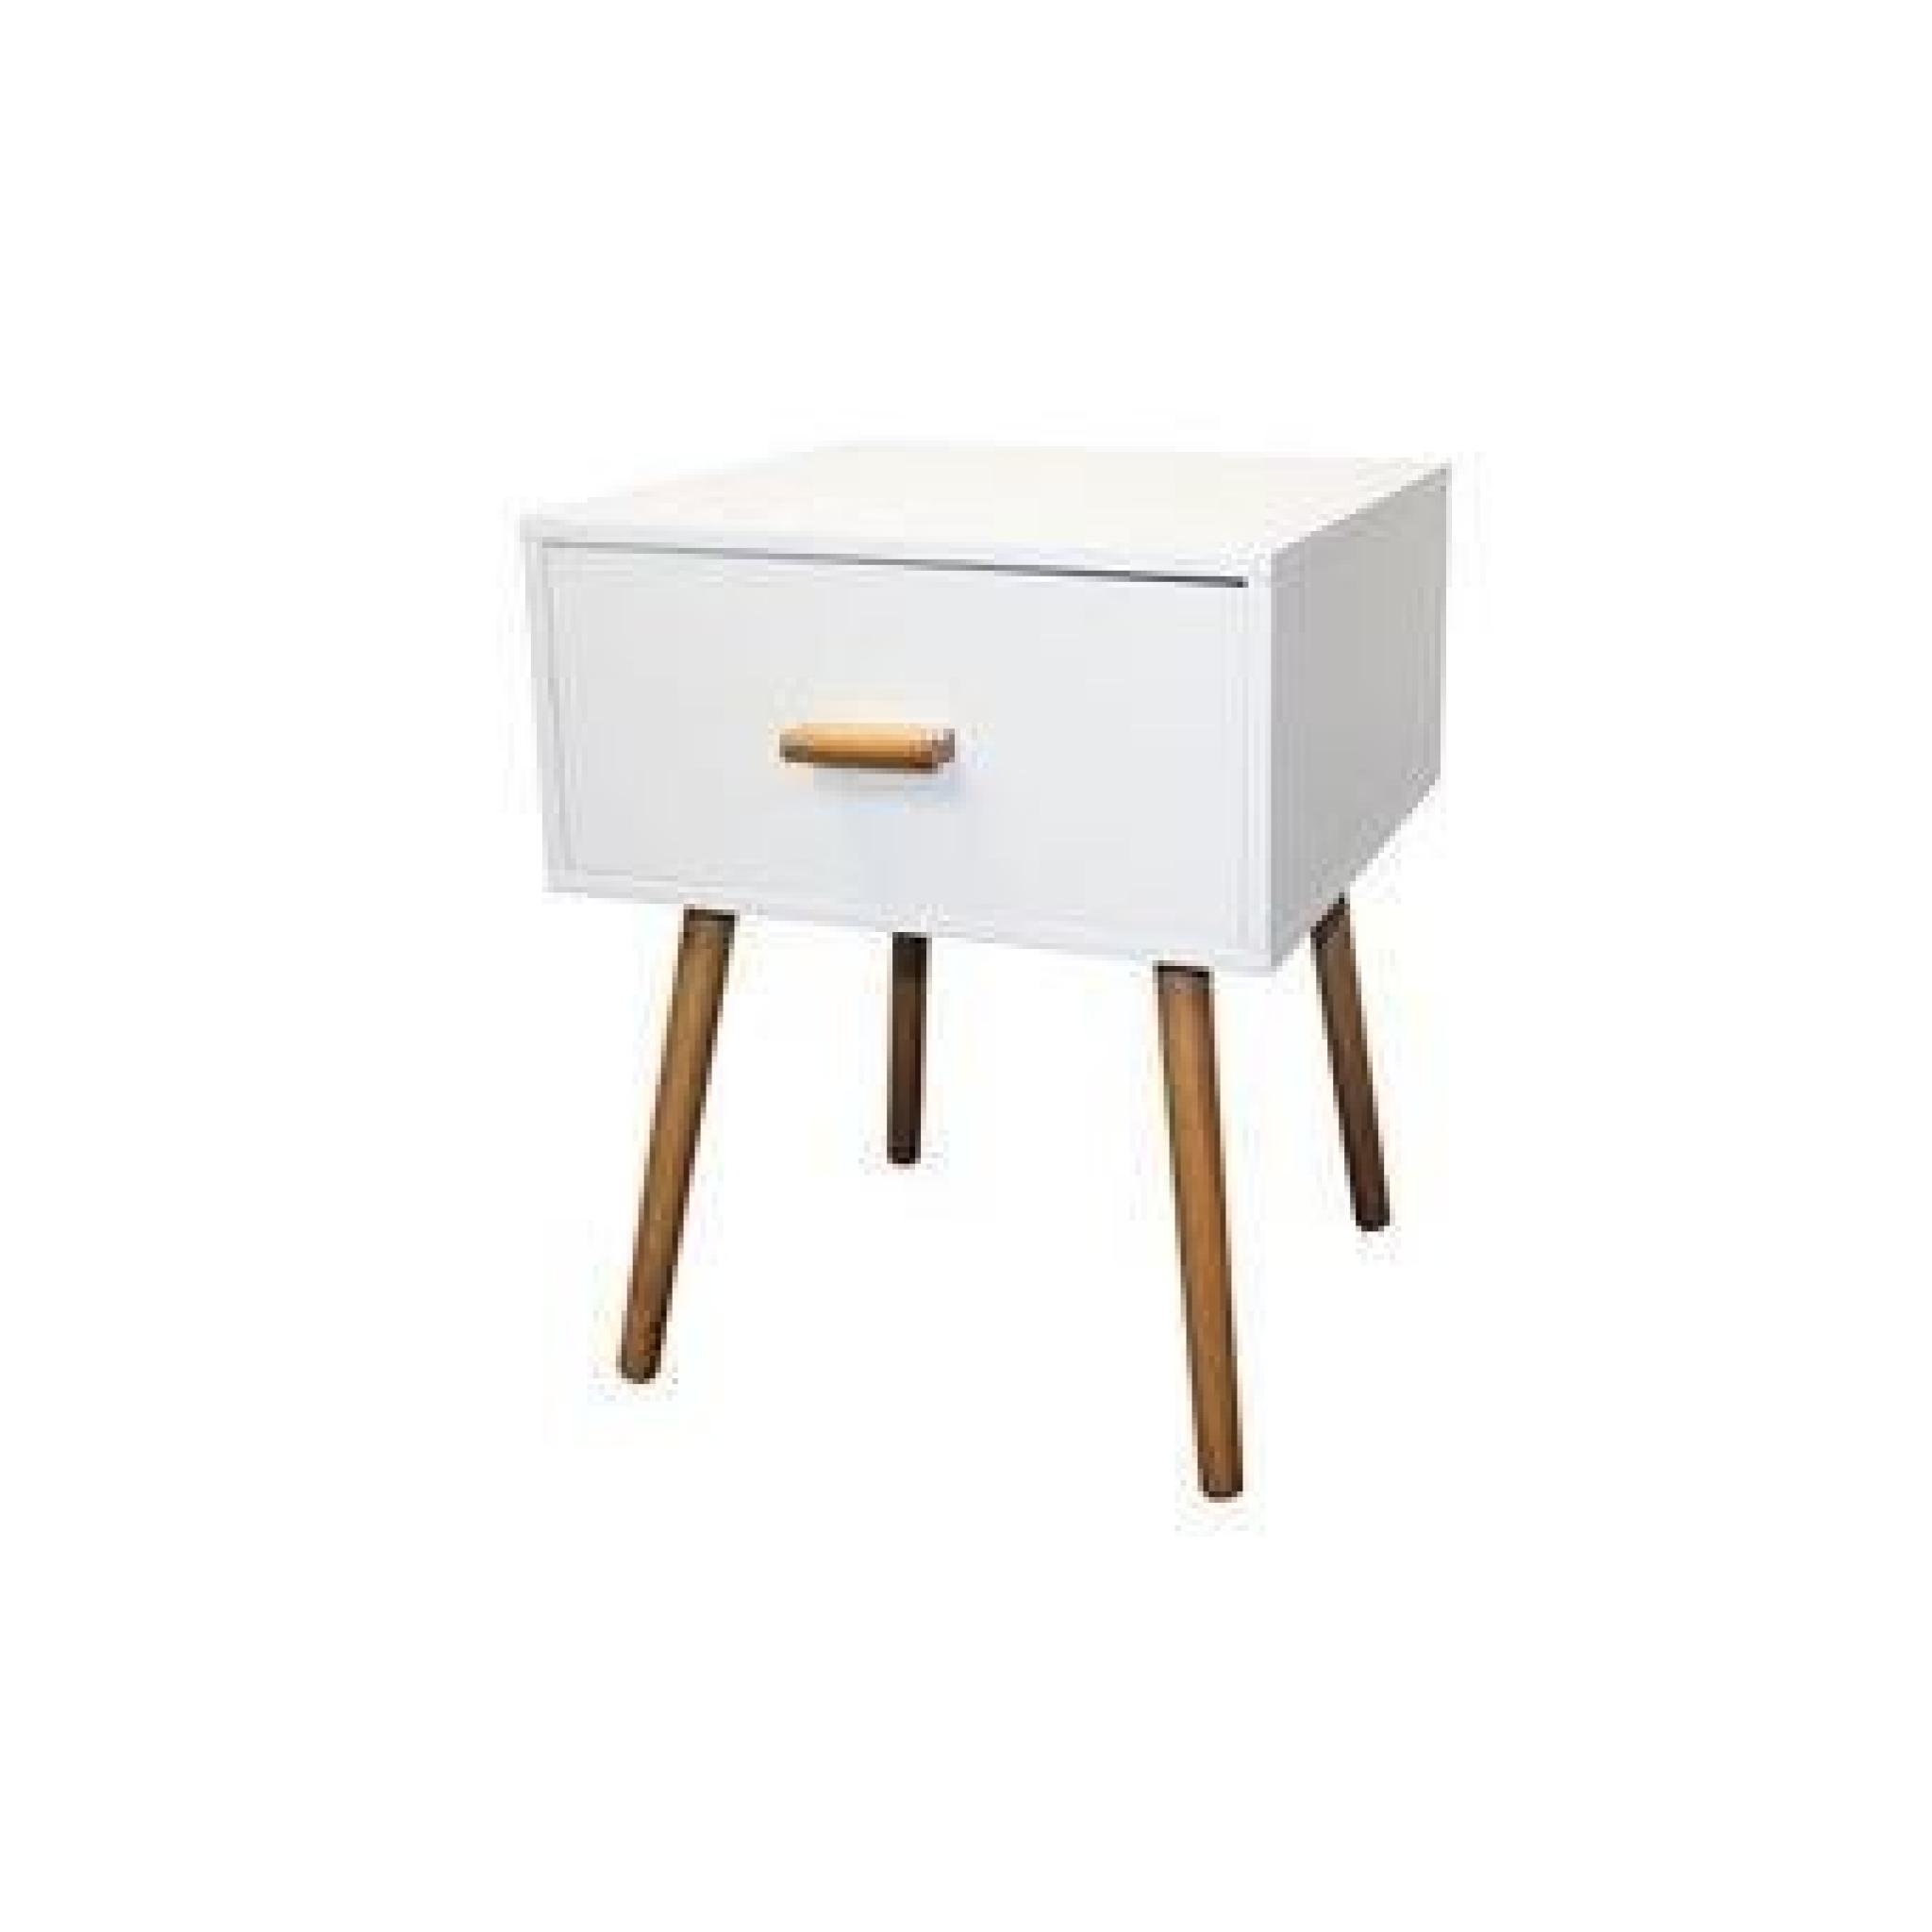 Table de chevet blanc design scandinave achat vente for Table basse design scandinave pas cher